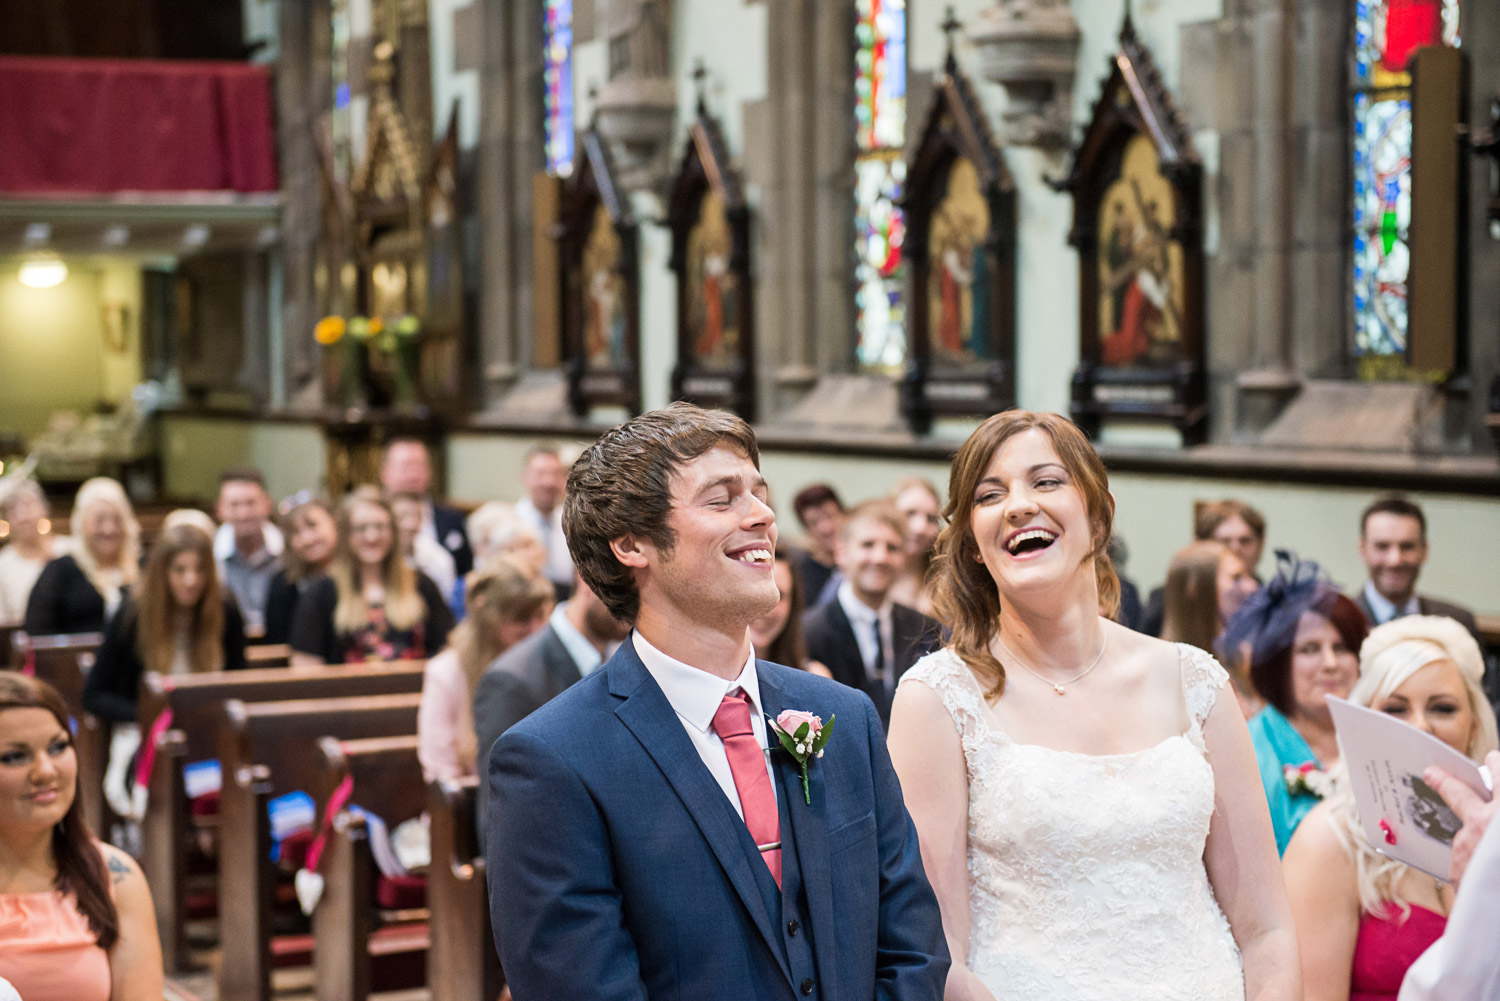 Copy of bride and groom laughing during the wedding ceremony in skipton